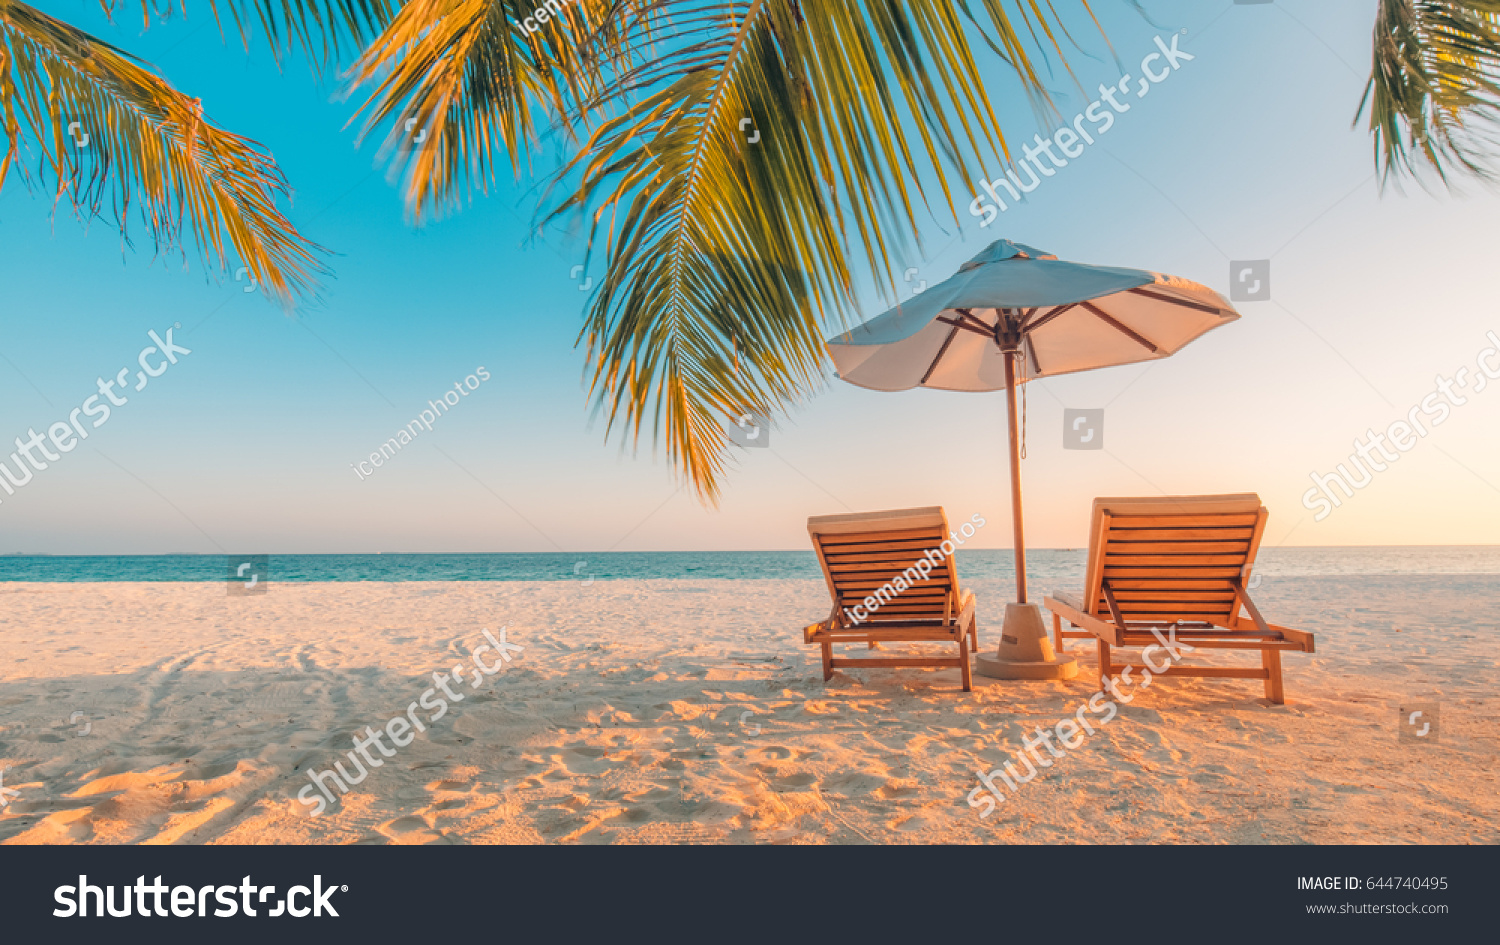 tranquil beach scene exotic tropical beach の写真素材 今すぐ編集